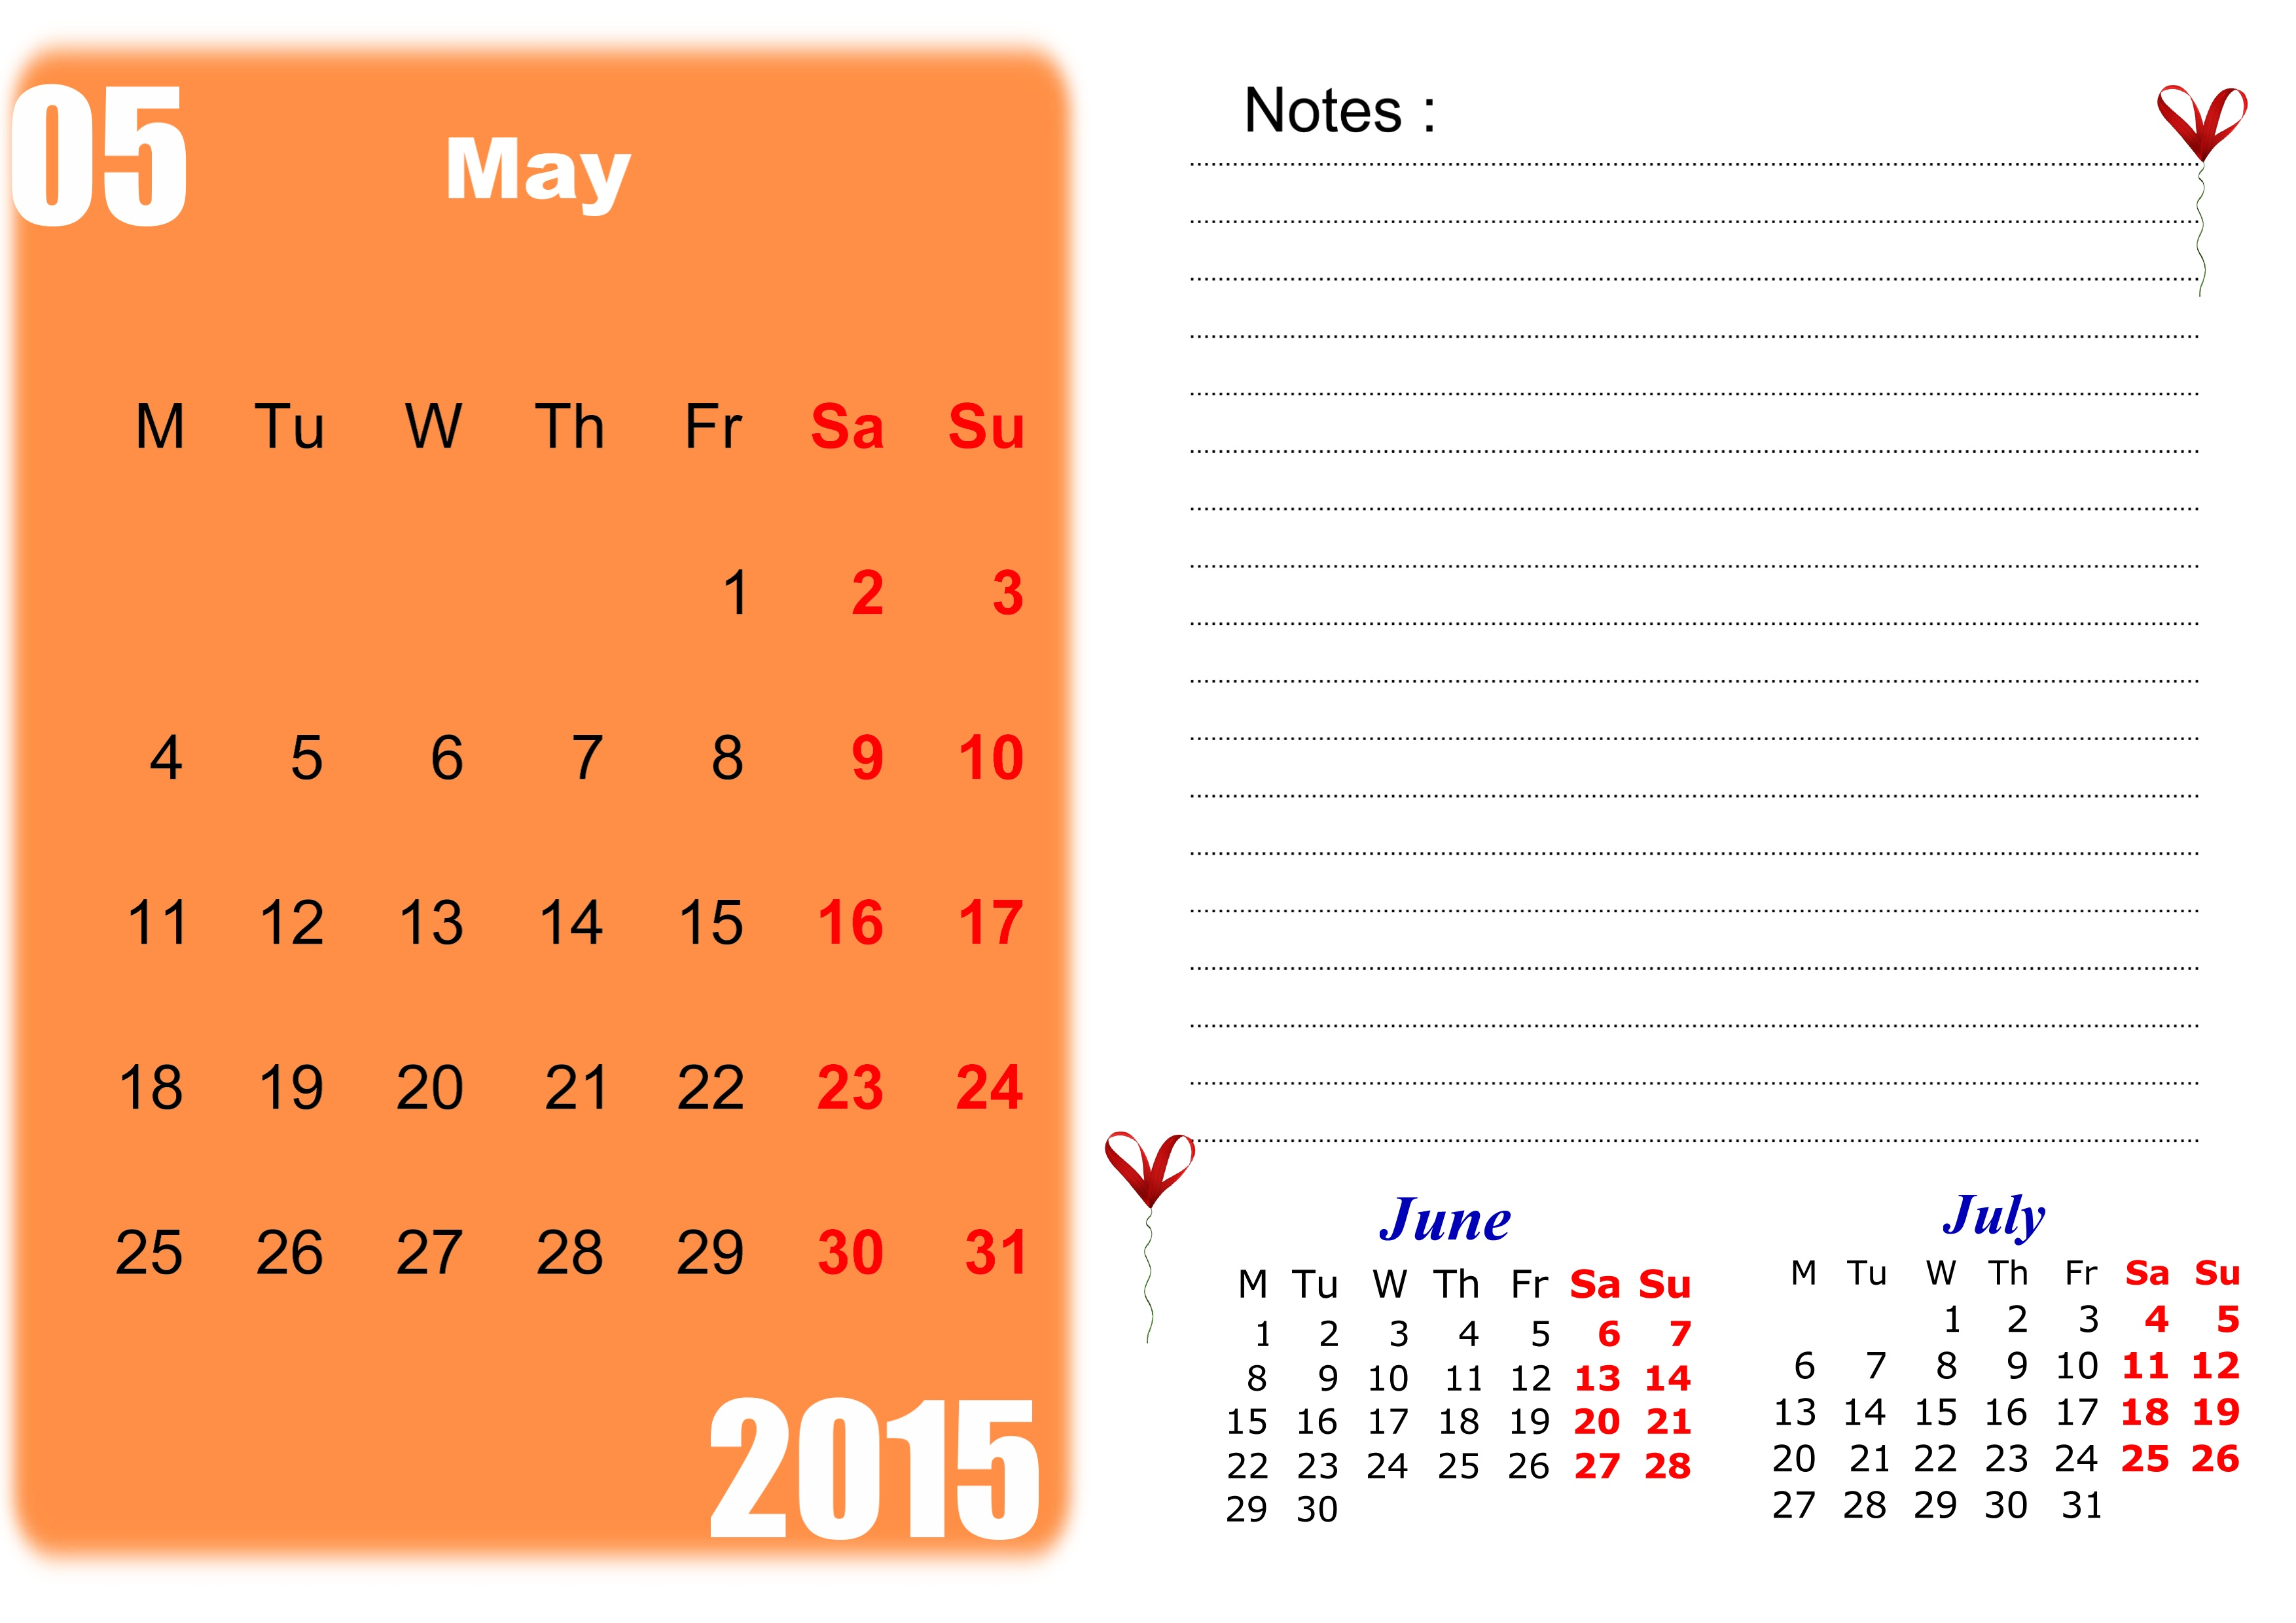 Monthly calendar clipart may image library stock May 2015 Calendar Clipart - Clipart Kid image library stock